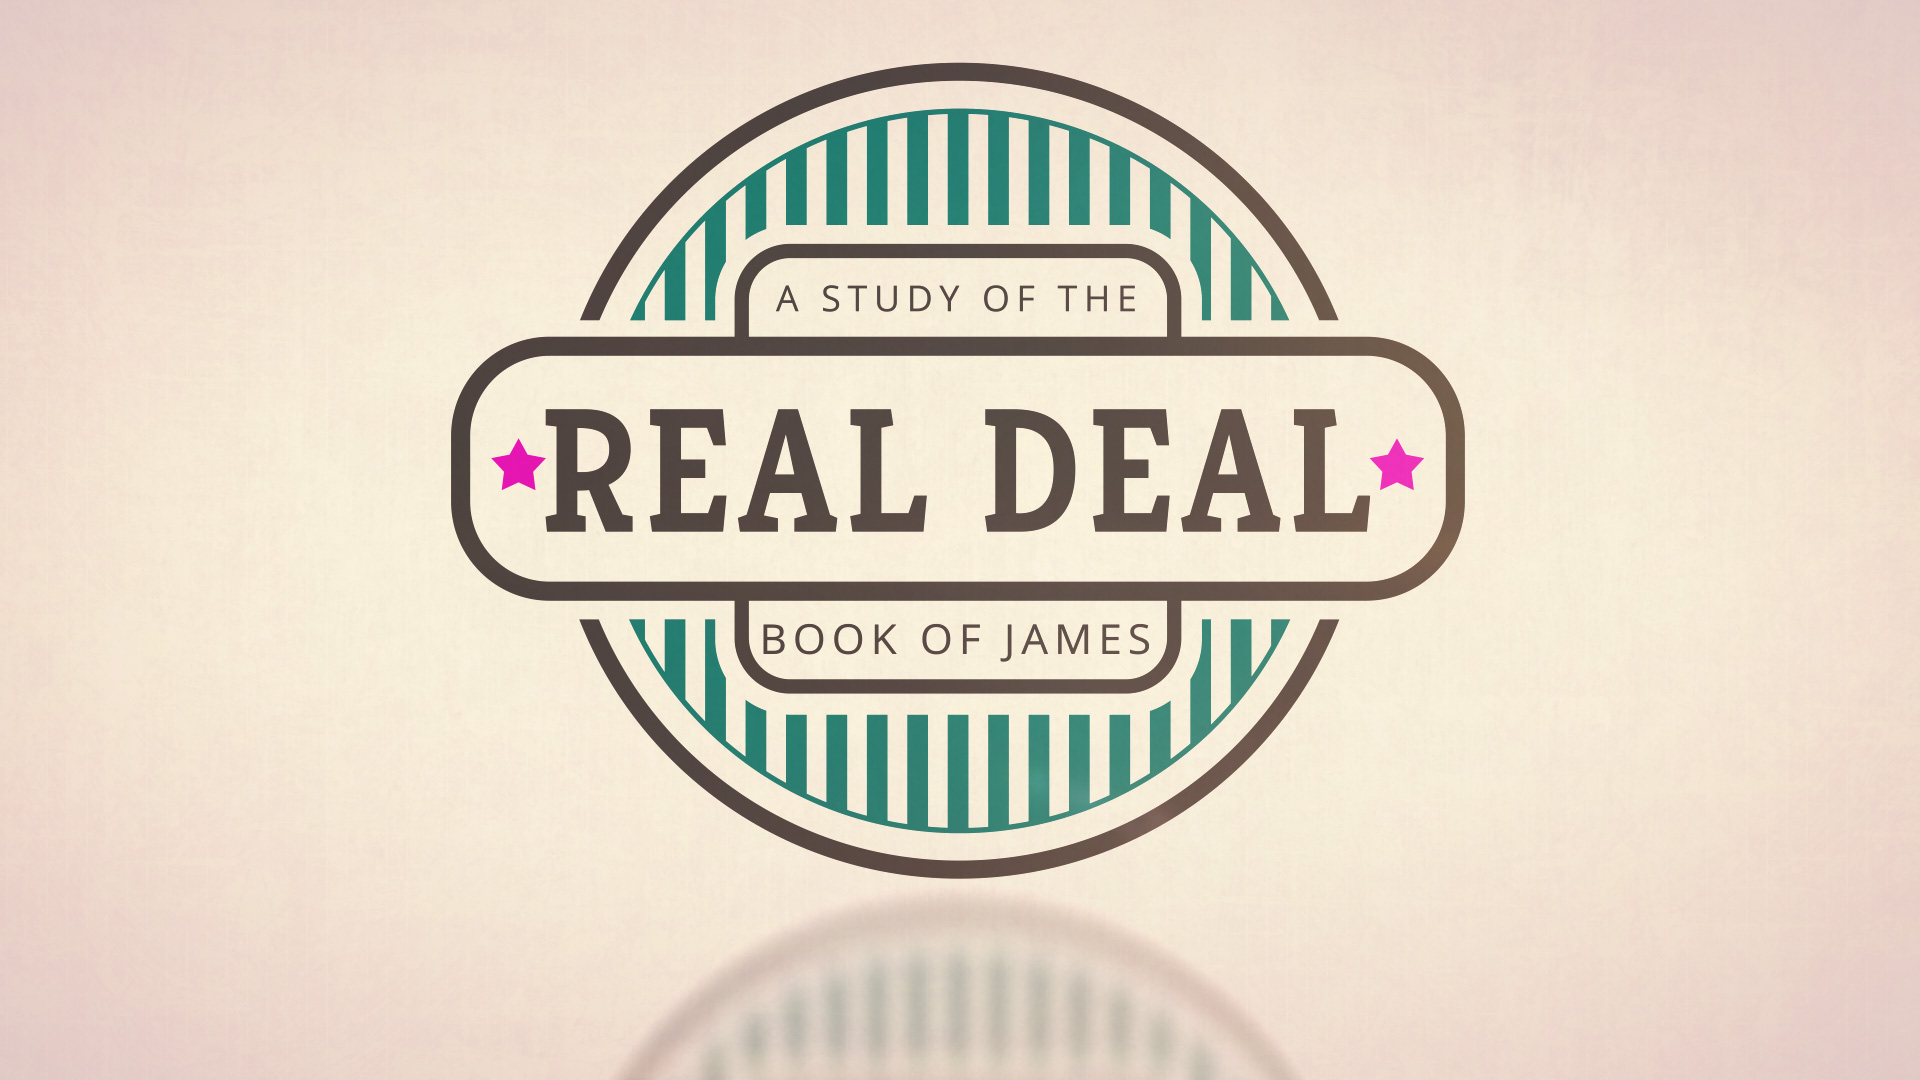 Real Deal Series Graphic.jpg